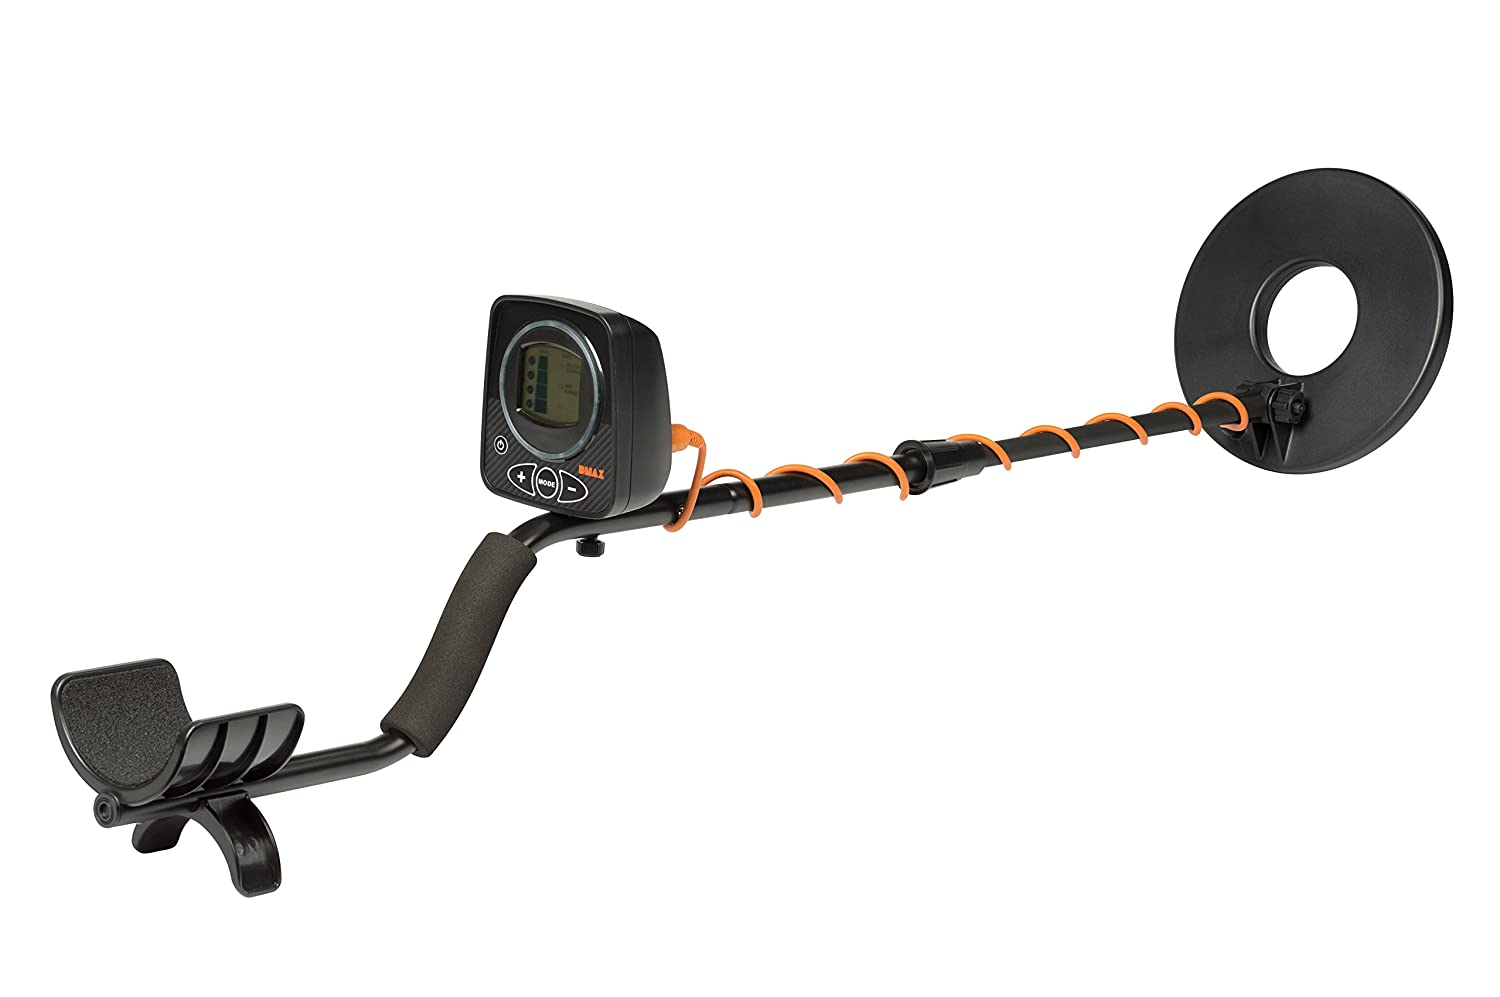 Copper and Silver Calendared Easysearch with 8.5 Metal Detector Search Coil for Detection of Iron